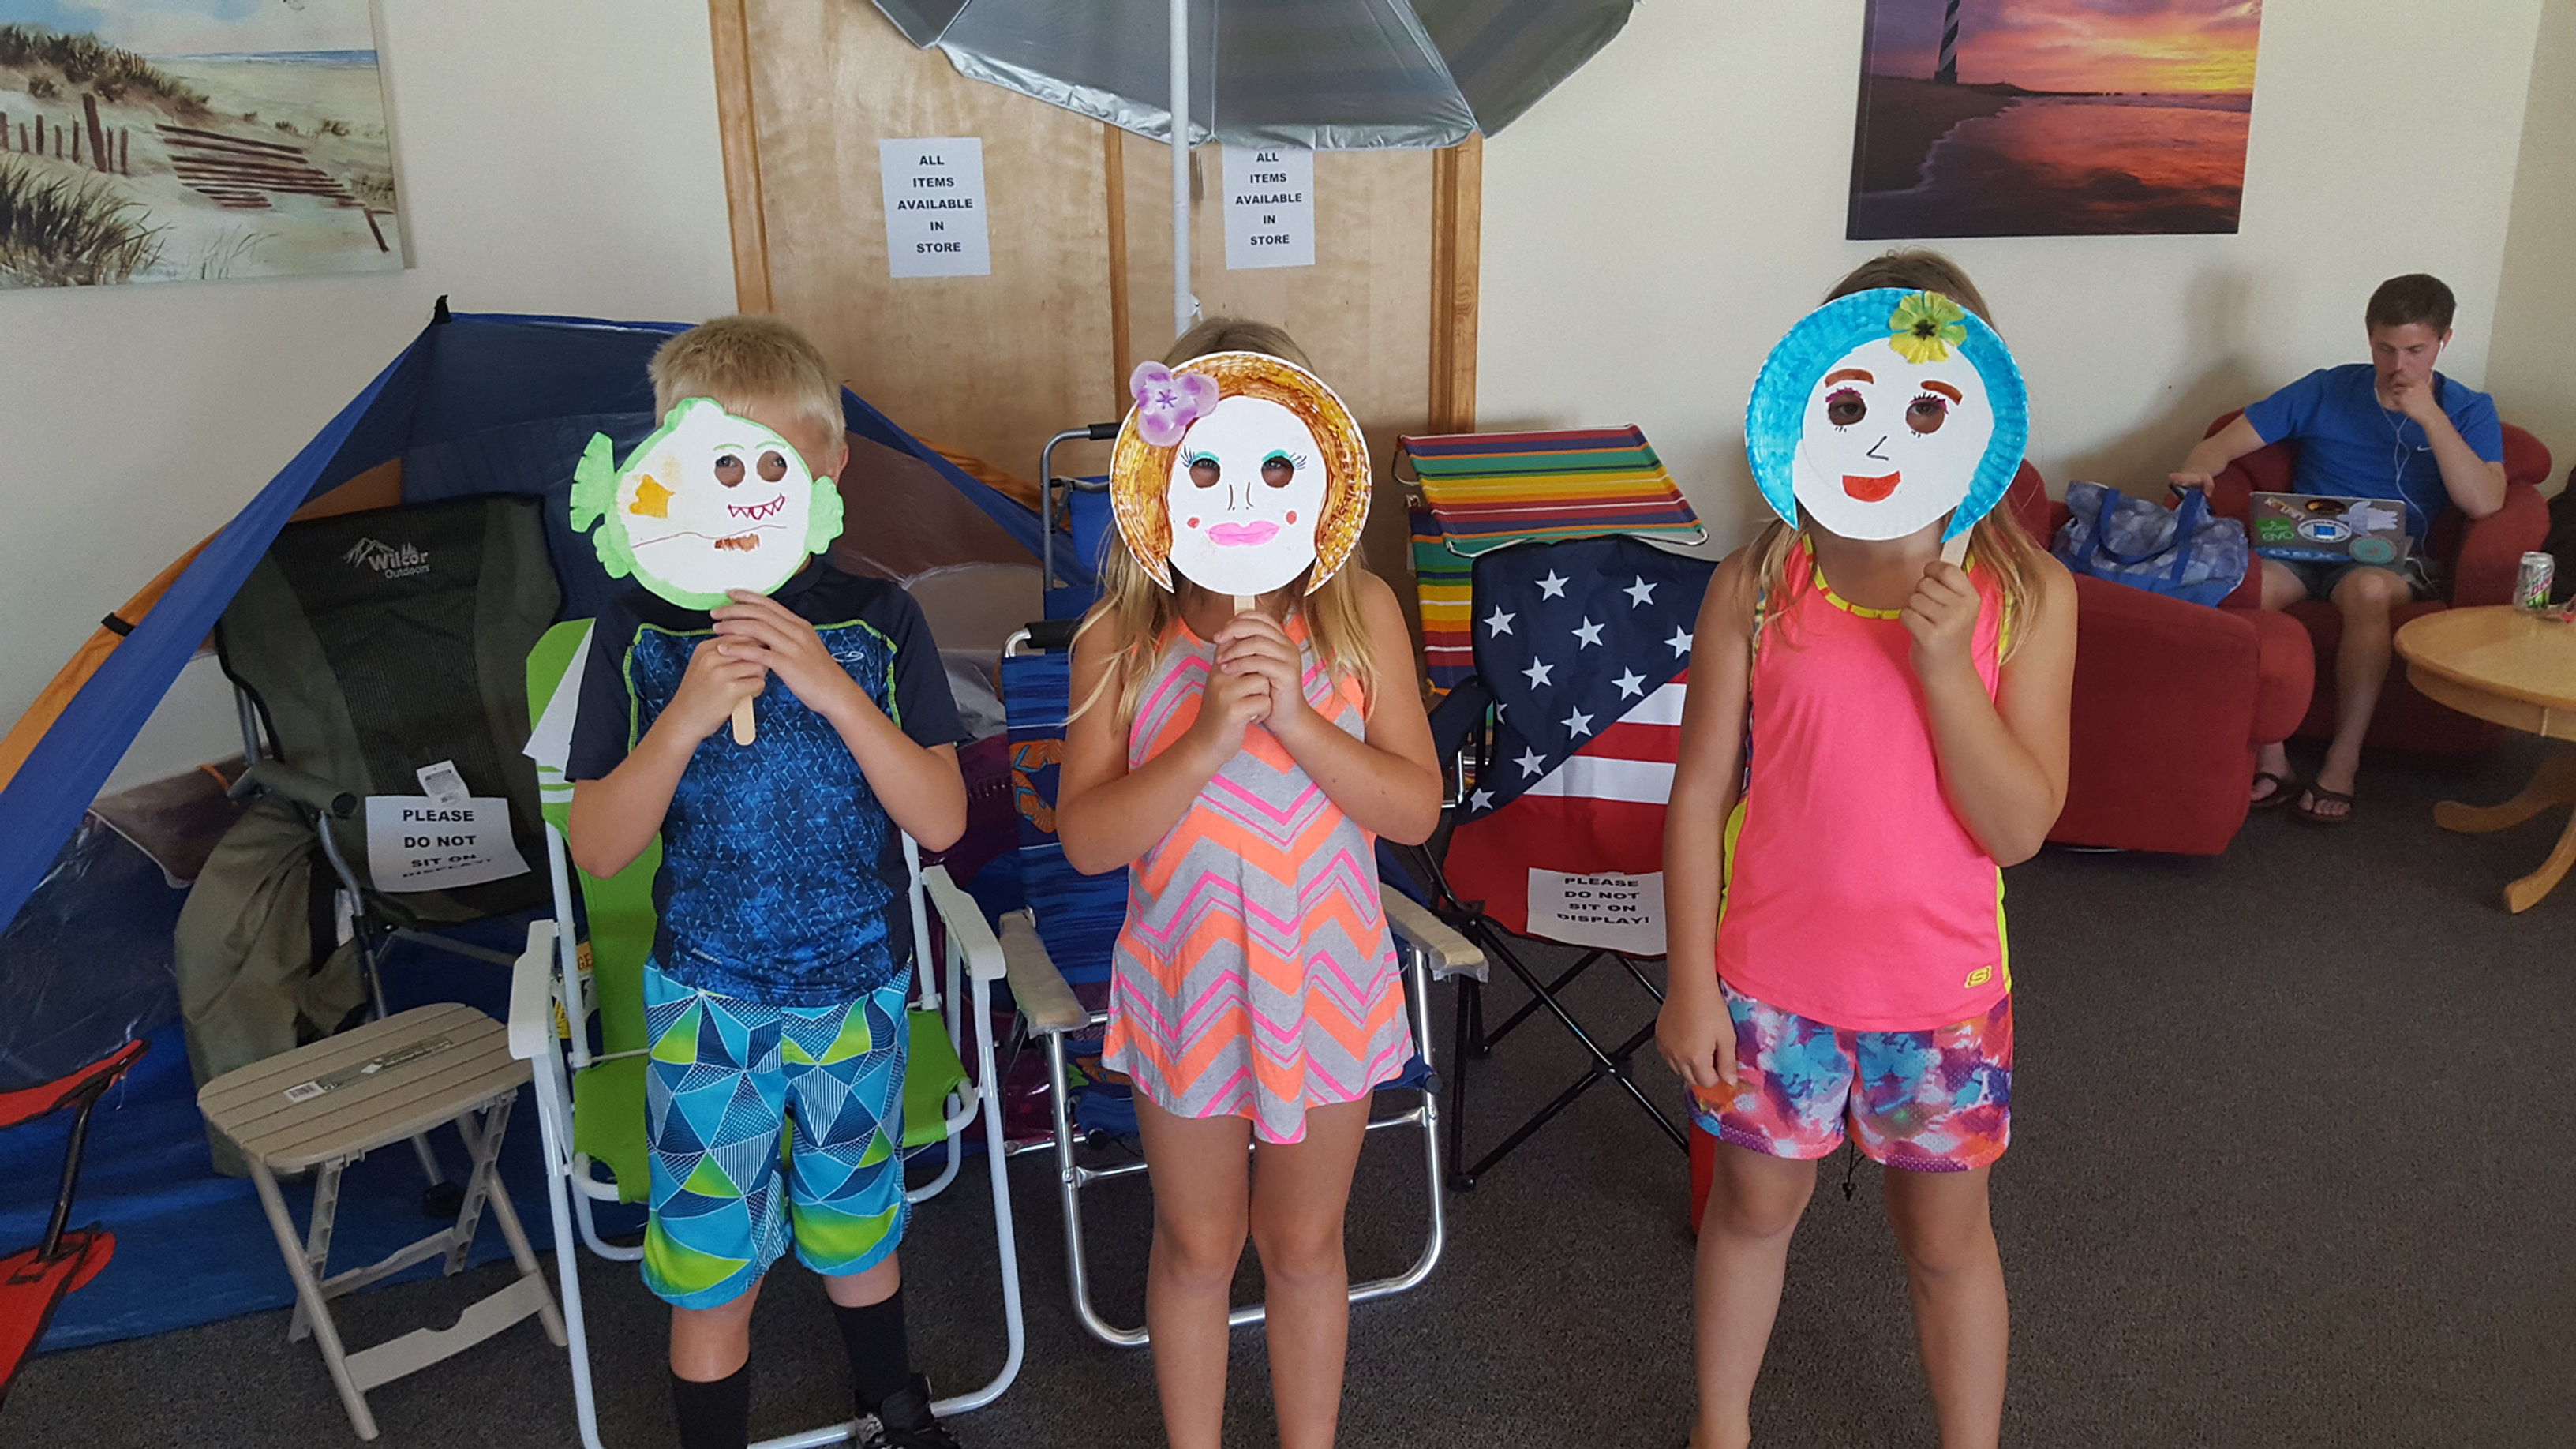 C& Hatteras RV C&ground and Resort   Paper Plate Faces. & Camp Hatteras RV Campground and Resort   Paper Plate Faces